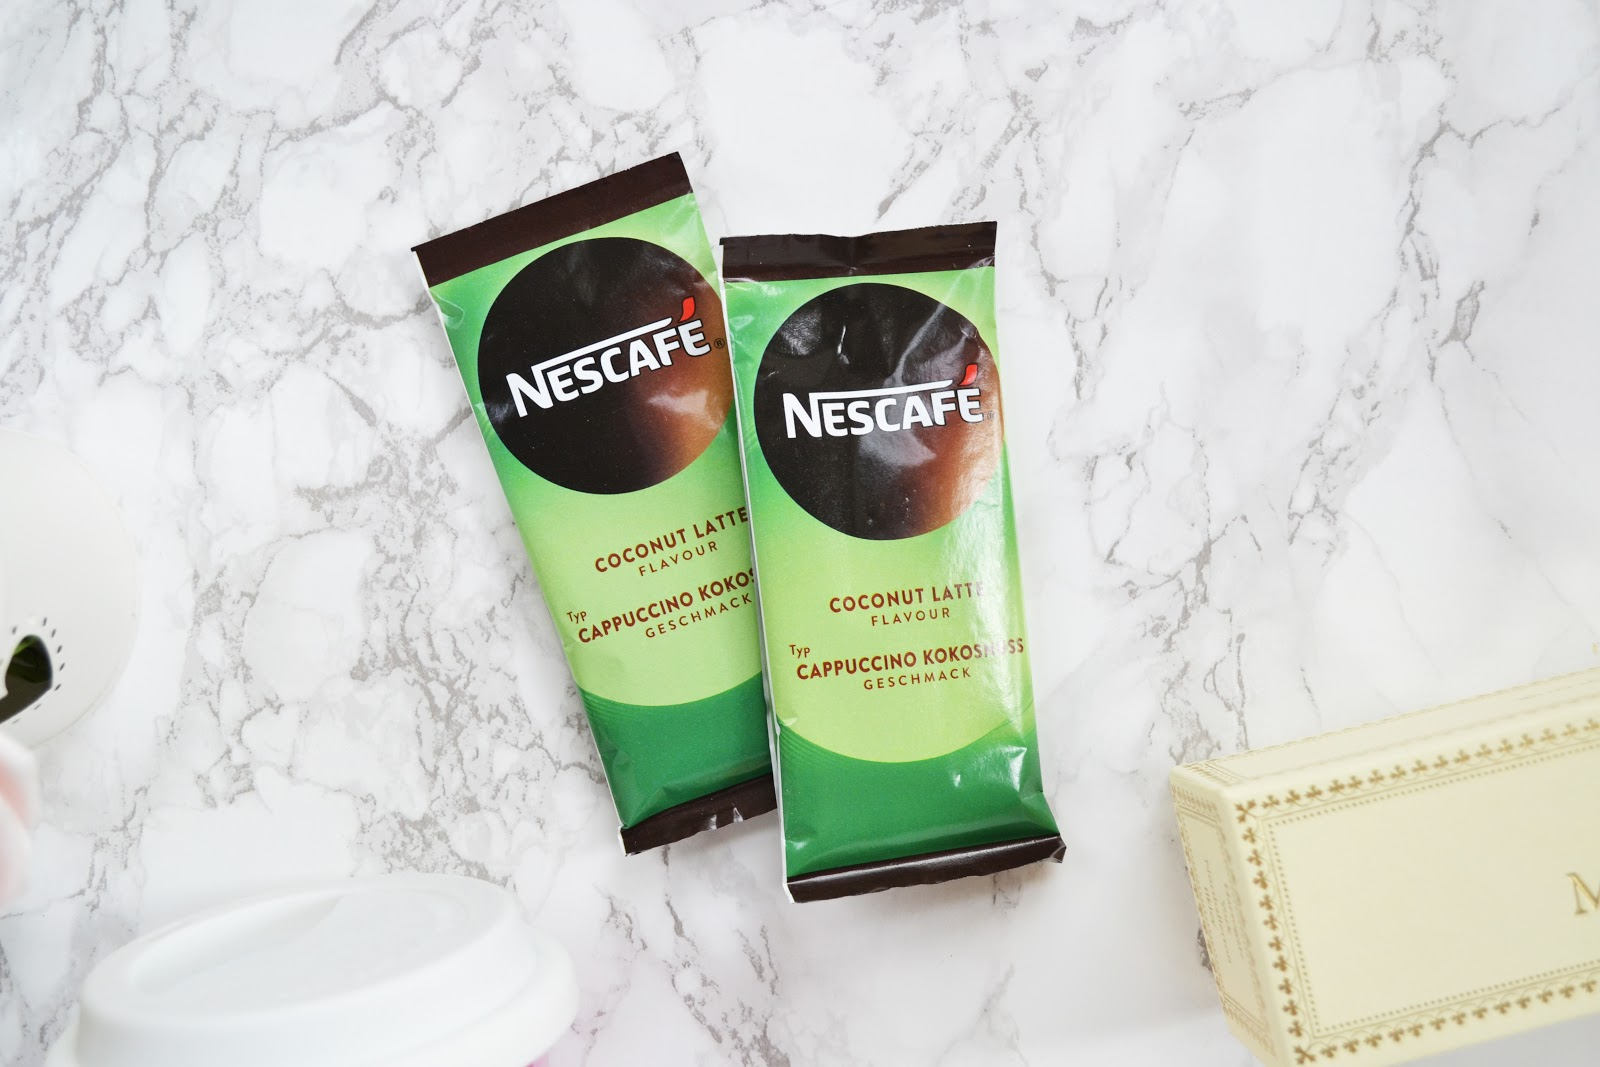 nescafe coconut latte